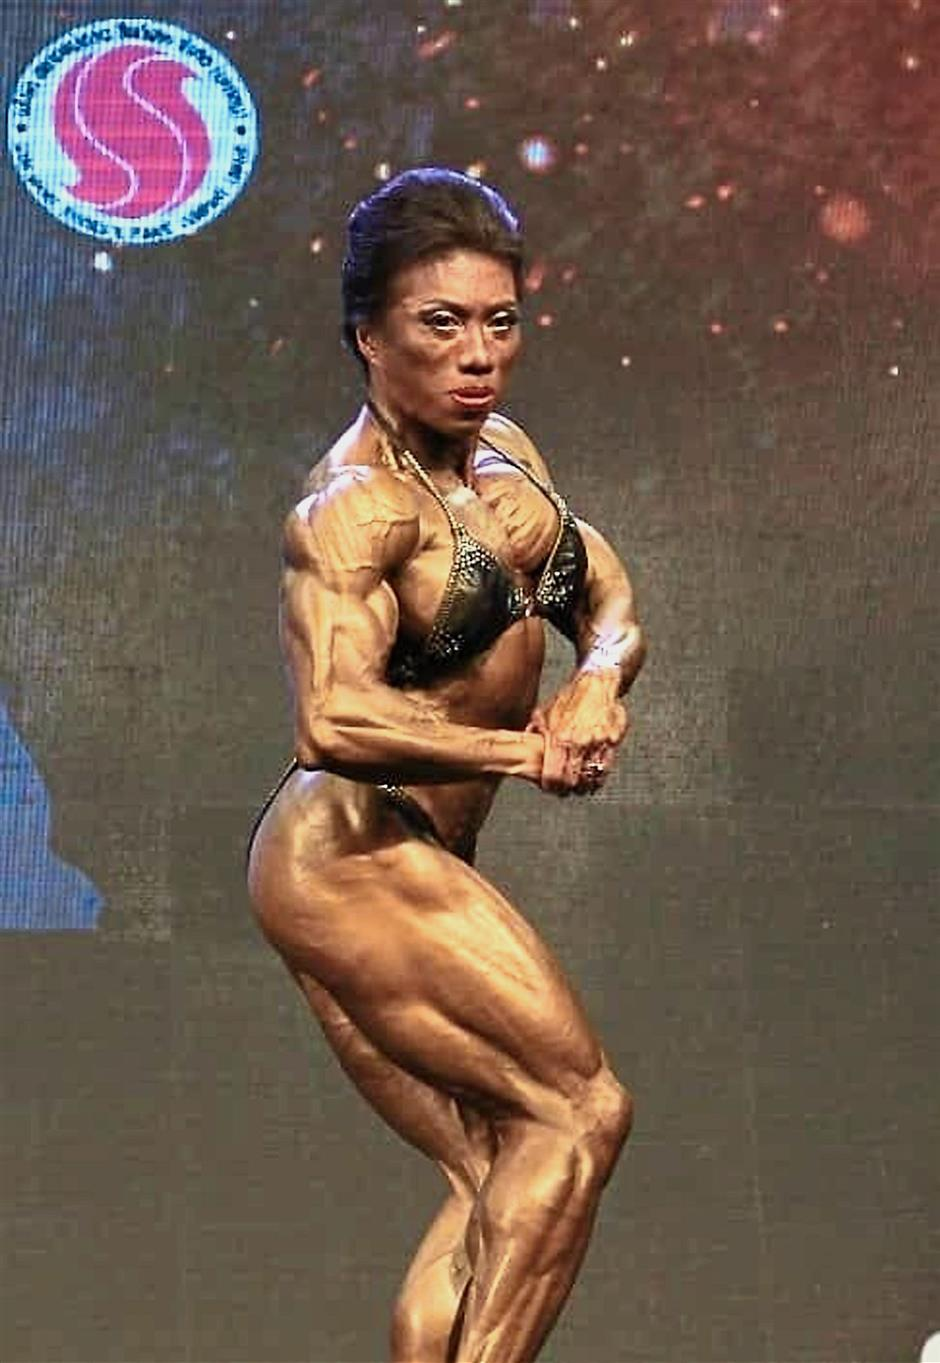 Flexing muscles: Lilian Tan's pose that won the women's 55kg category at the World Bodybuilding and Physical Fitness Championships in Chiangmai, Thailand.